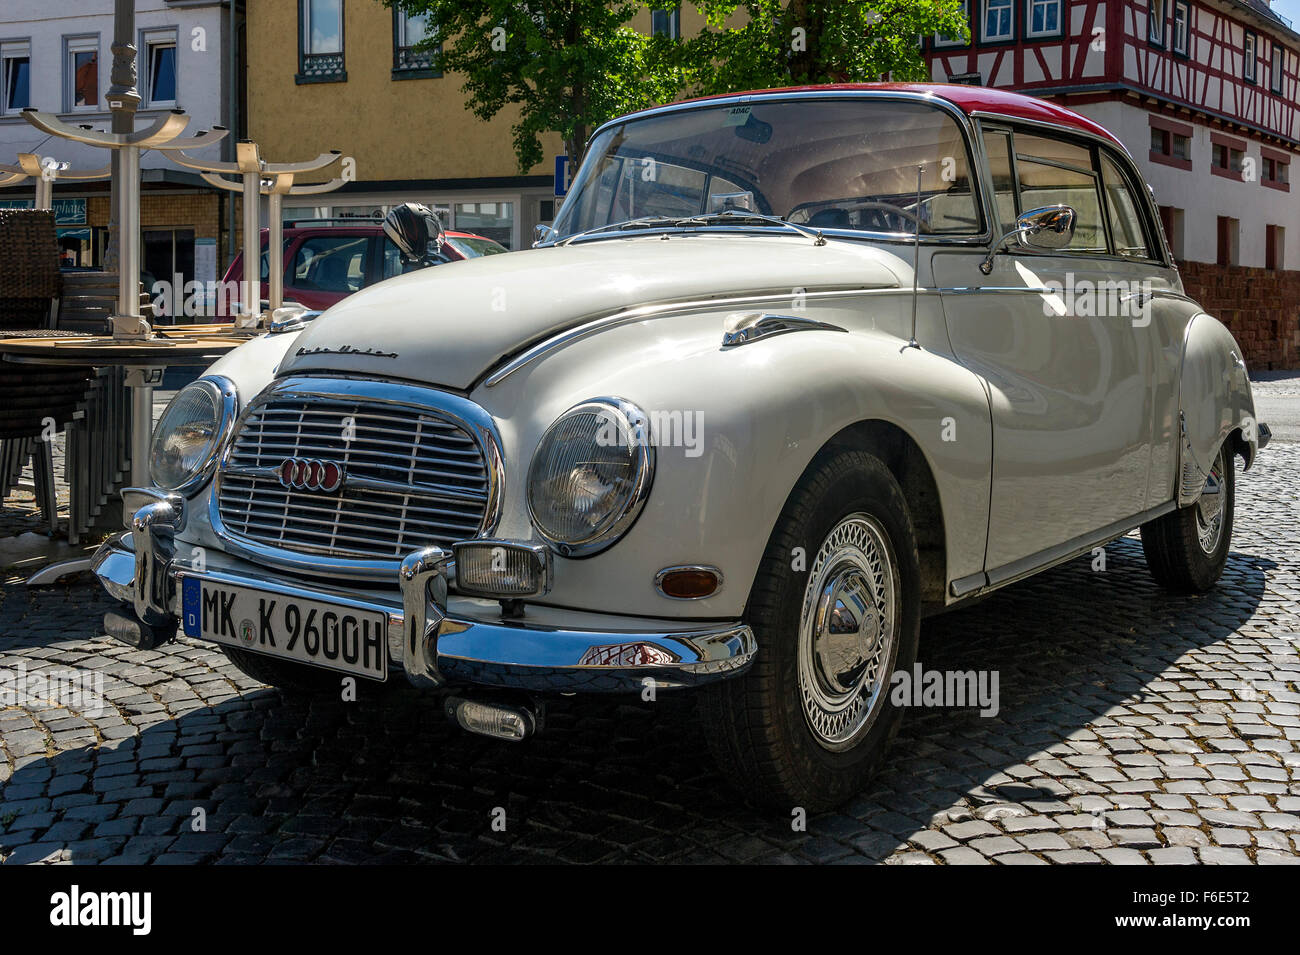 Oldtimer Auto Union DKW 1000 S de Luxe coupe, built 1959-1963, Nidda, Hesse, Germany - Stock Image